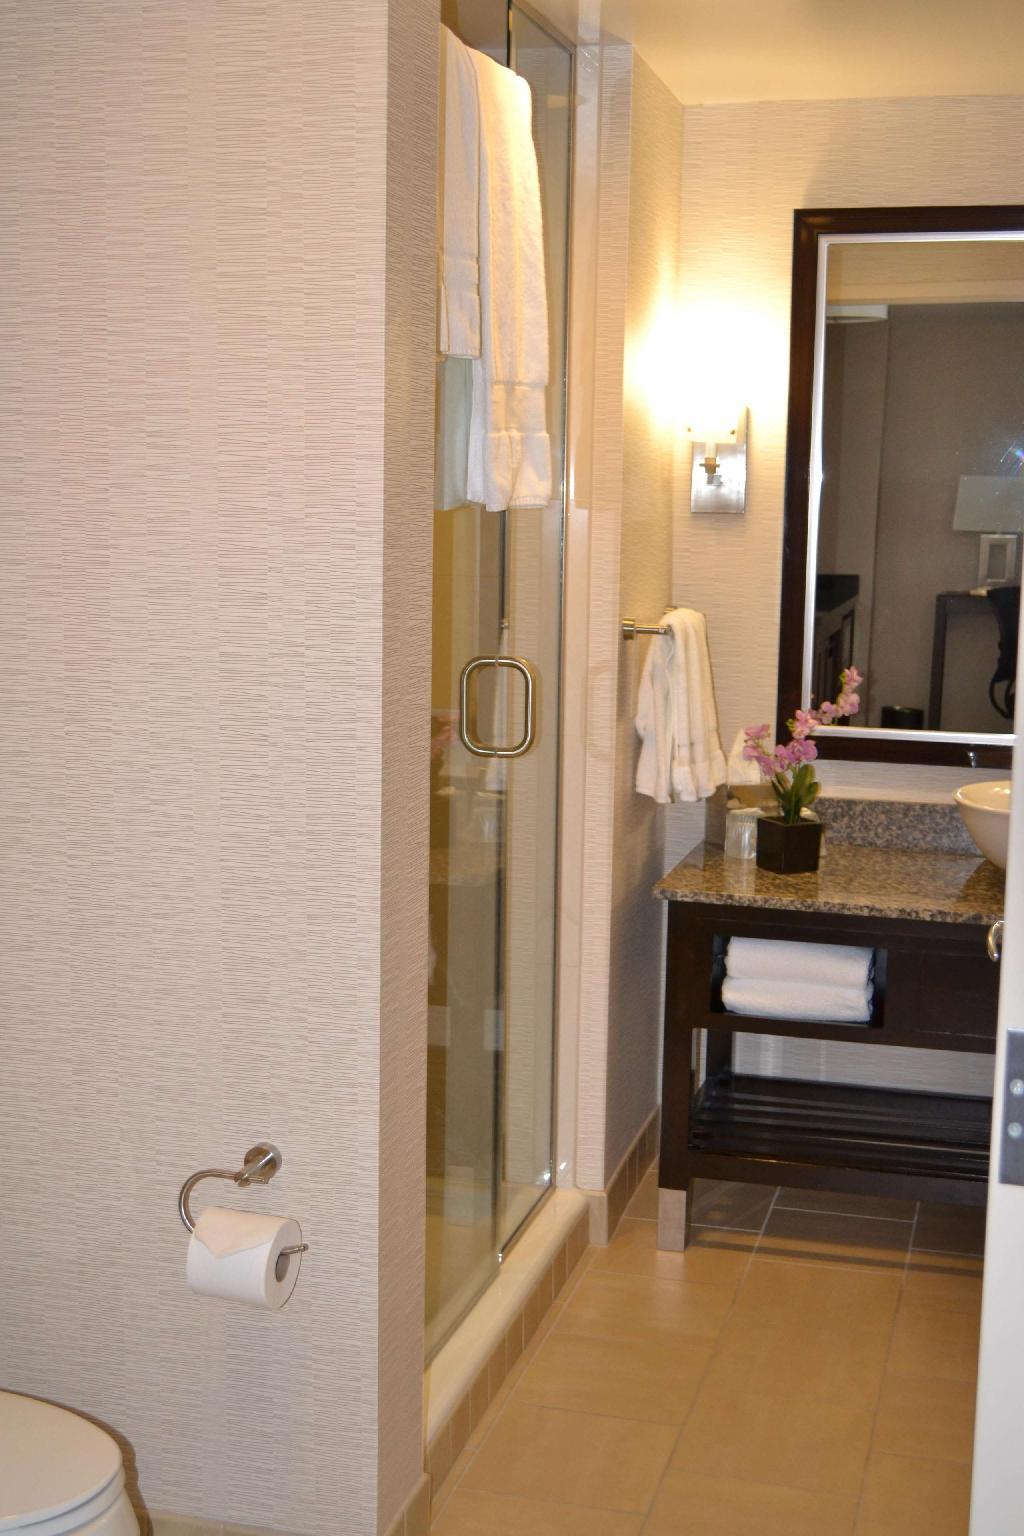 Embassy Suites Palmdale Hotel, Palmdale (CA) - Room Rates, Photos & Reviews